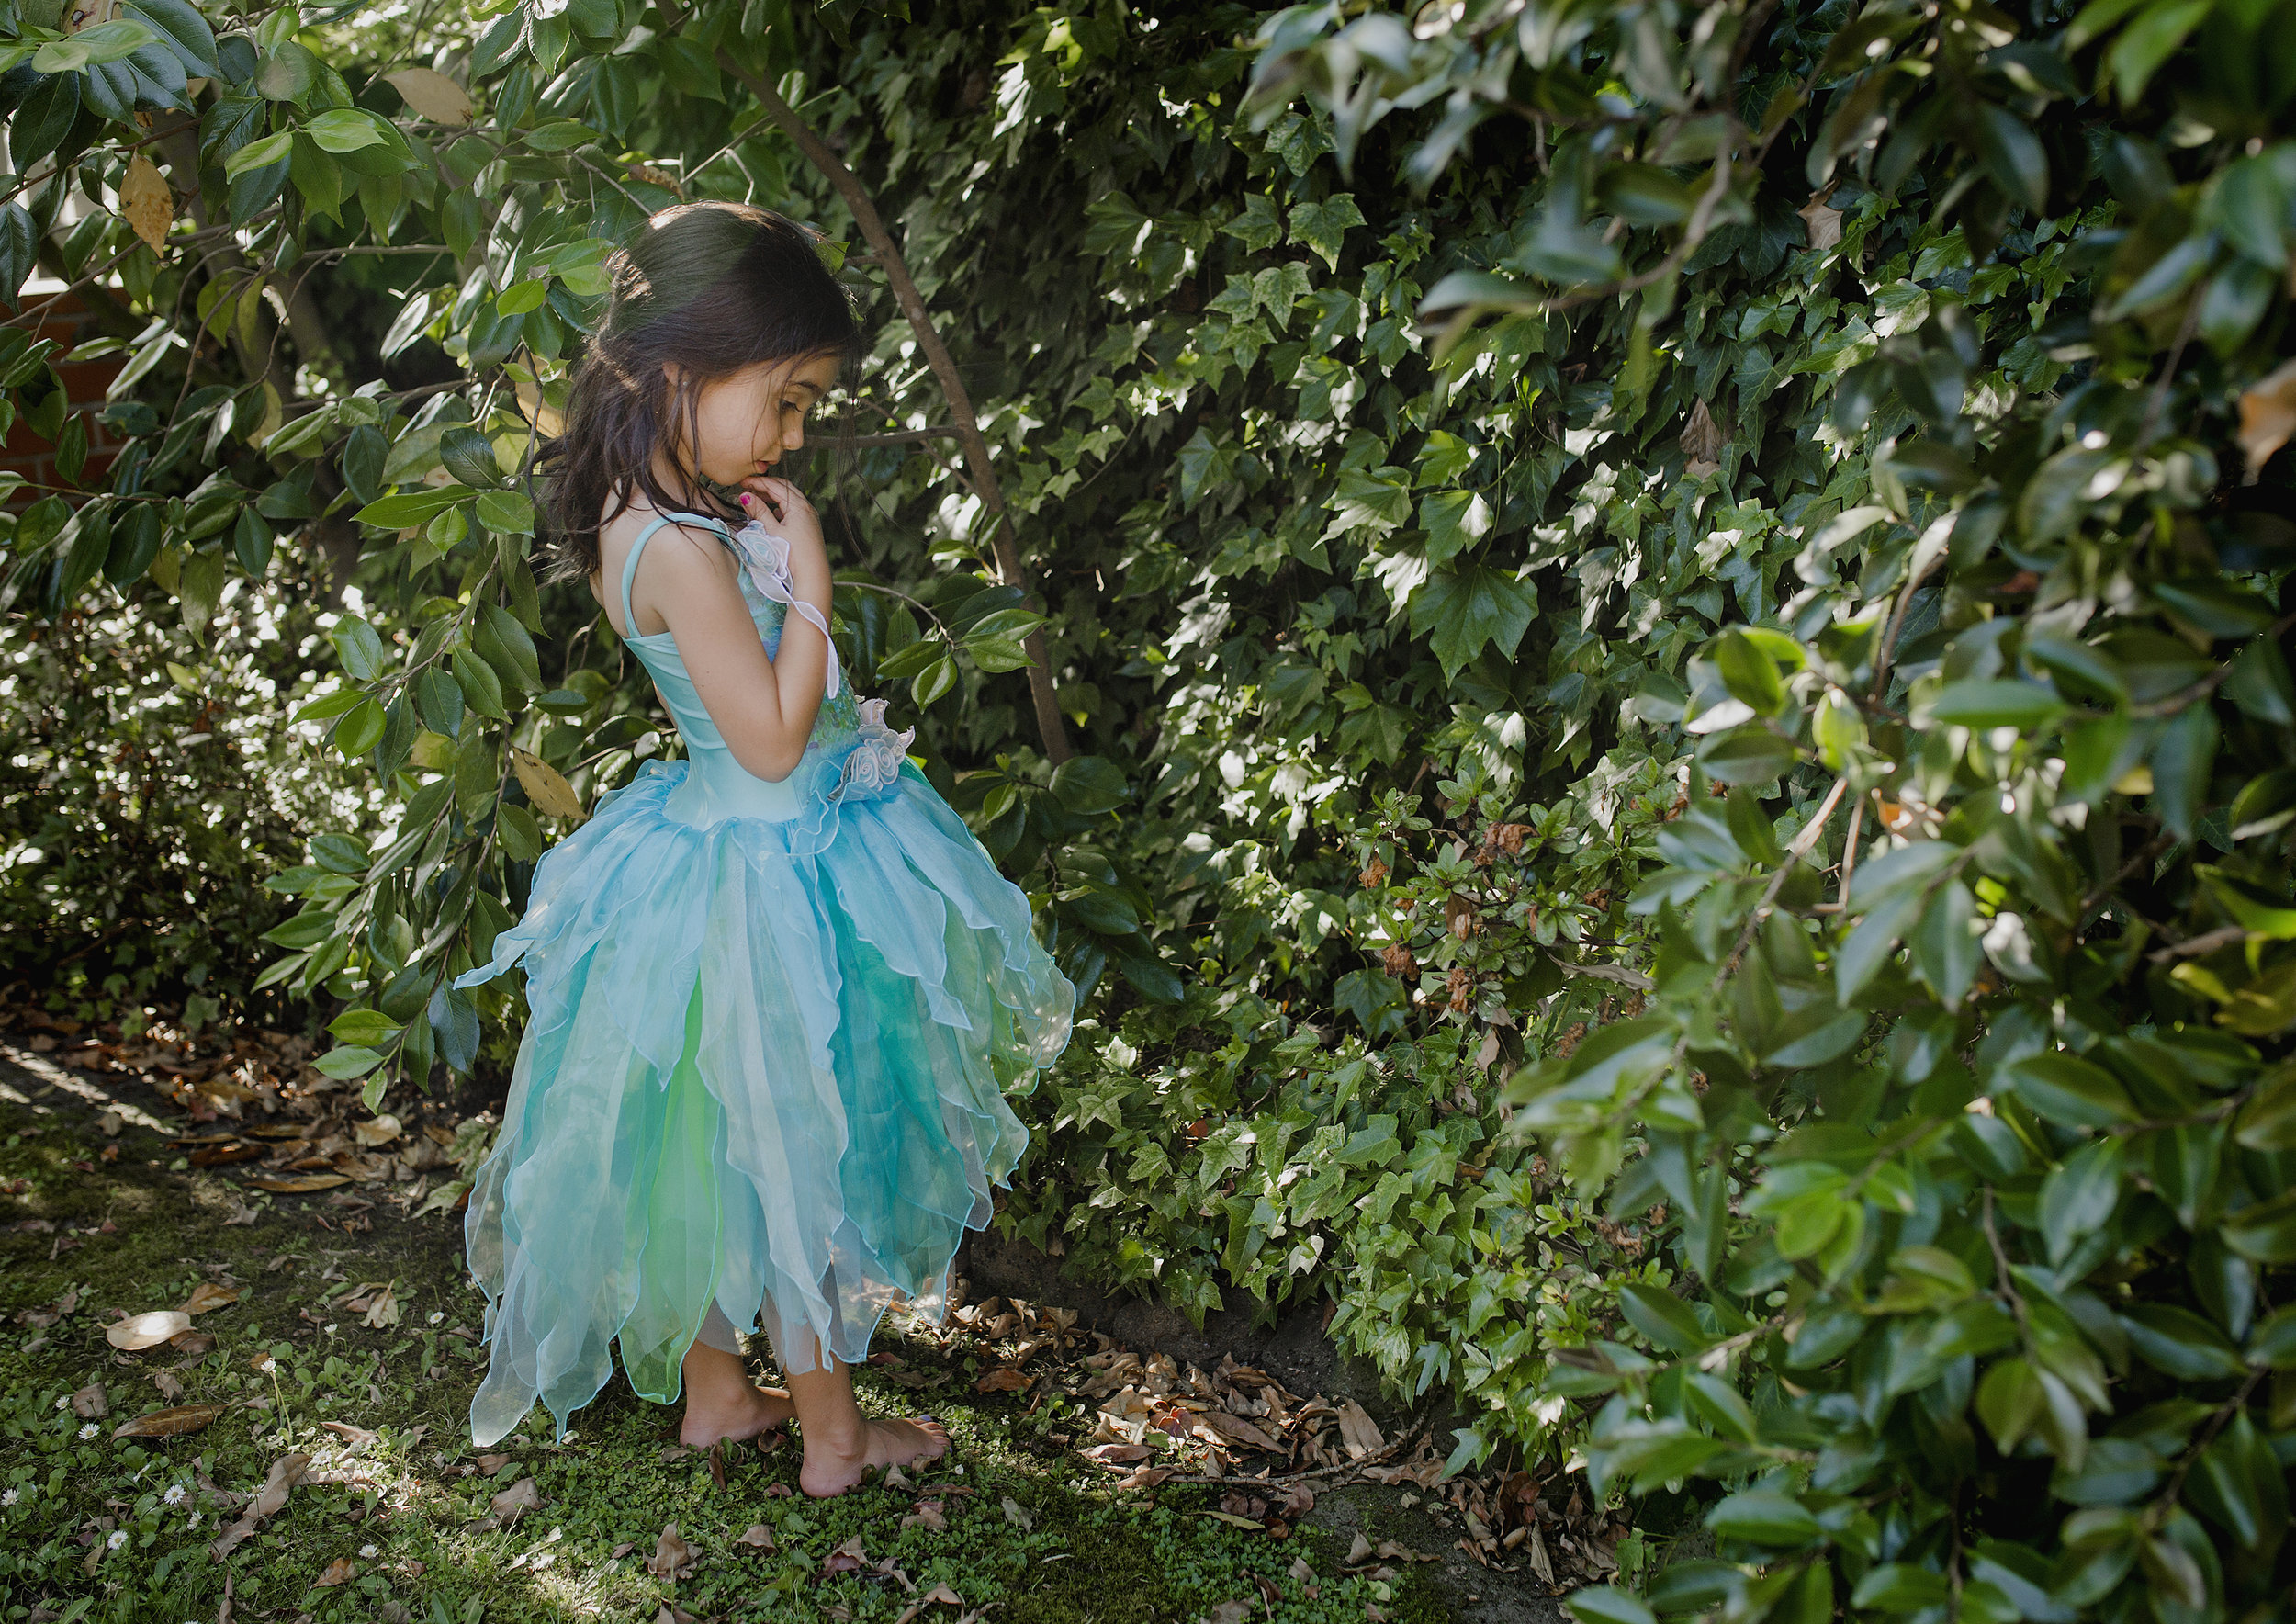 Fairies in the garden!